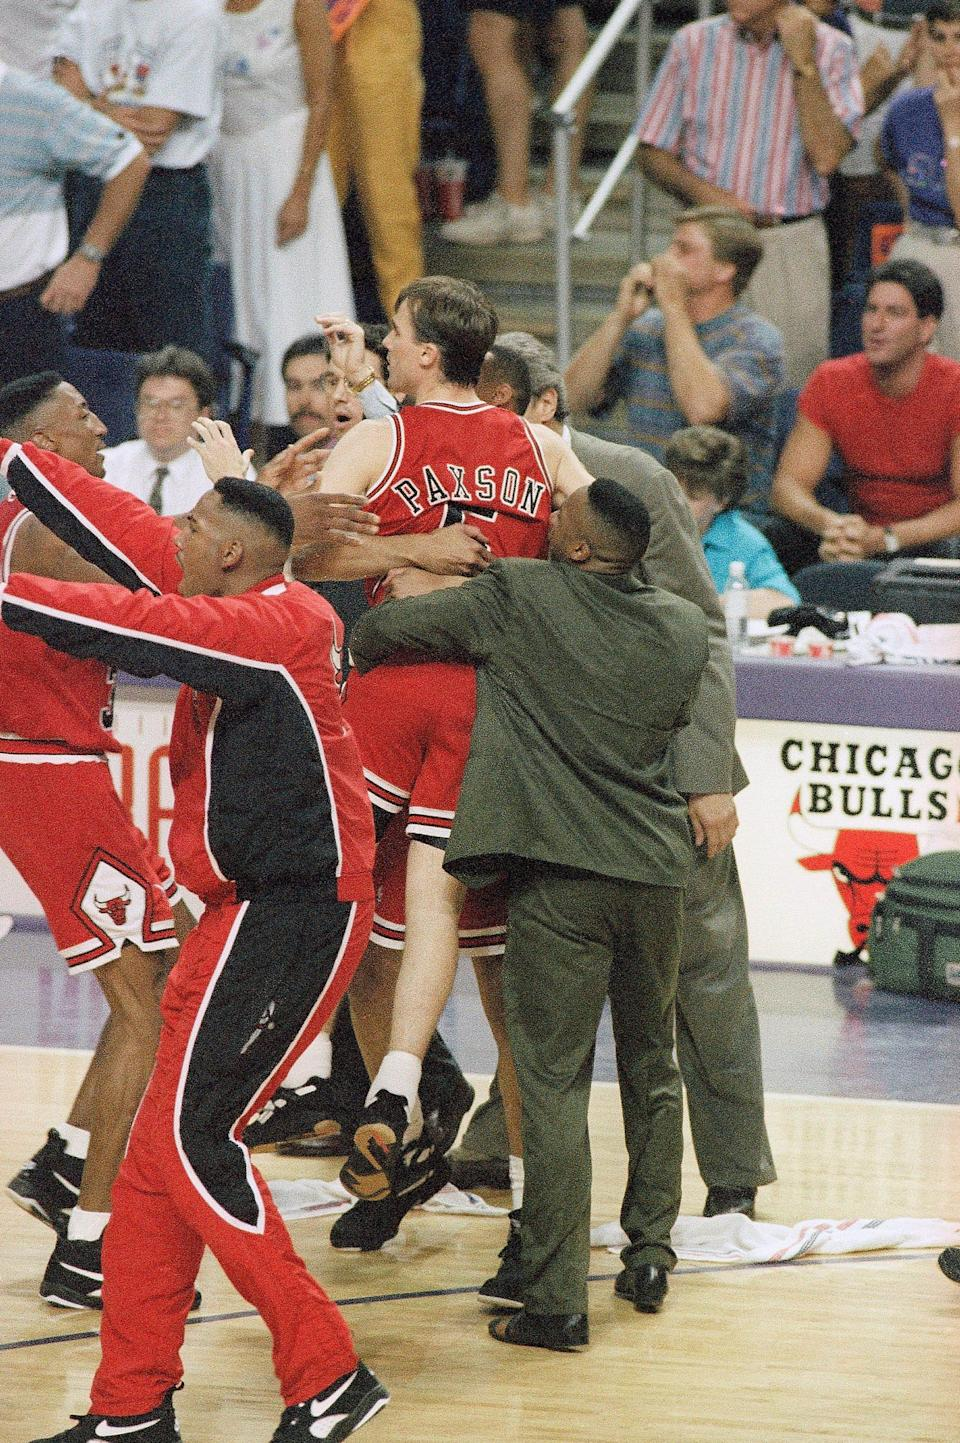 Chicago's John Paxson gets mobbed after his 3-point shot with 3.9 seconds left in the game over the Suns in Game 6 of the 1993 NBA Finals.